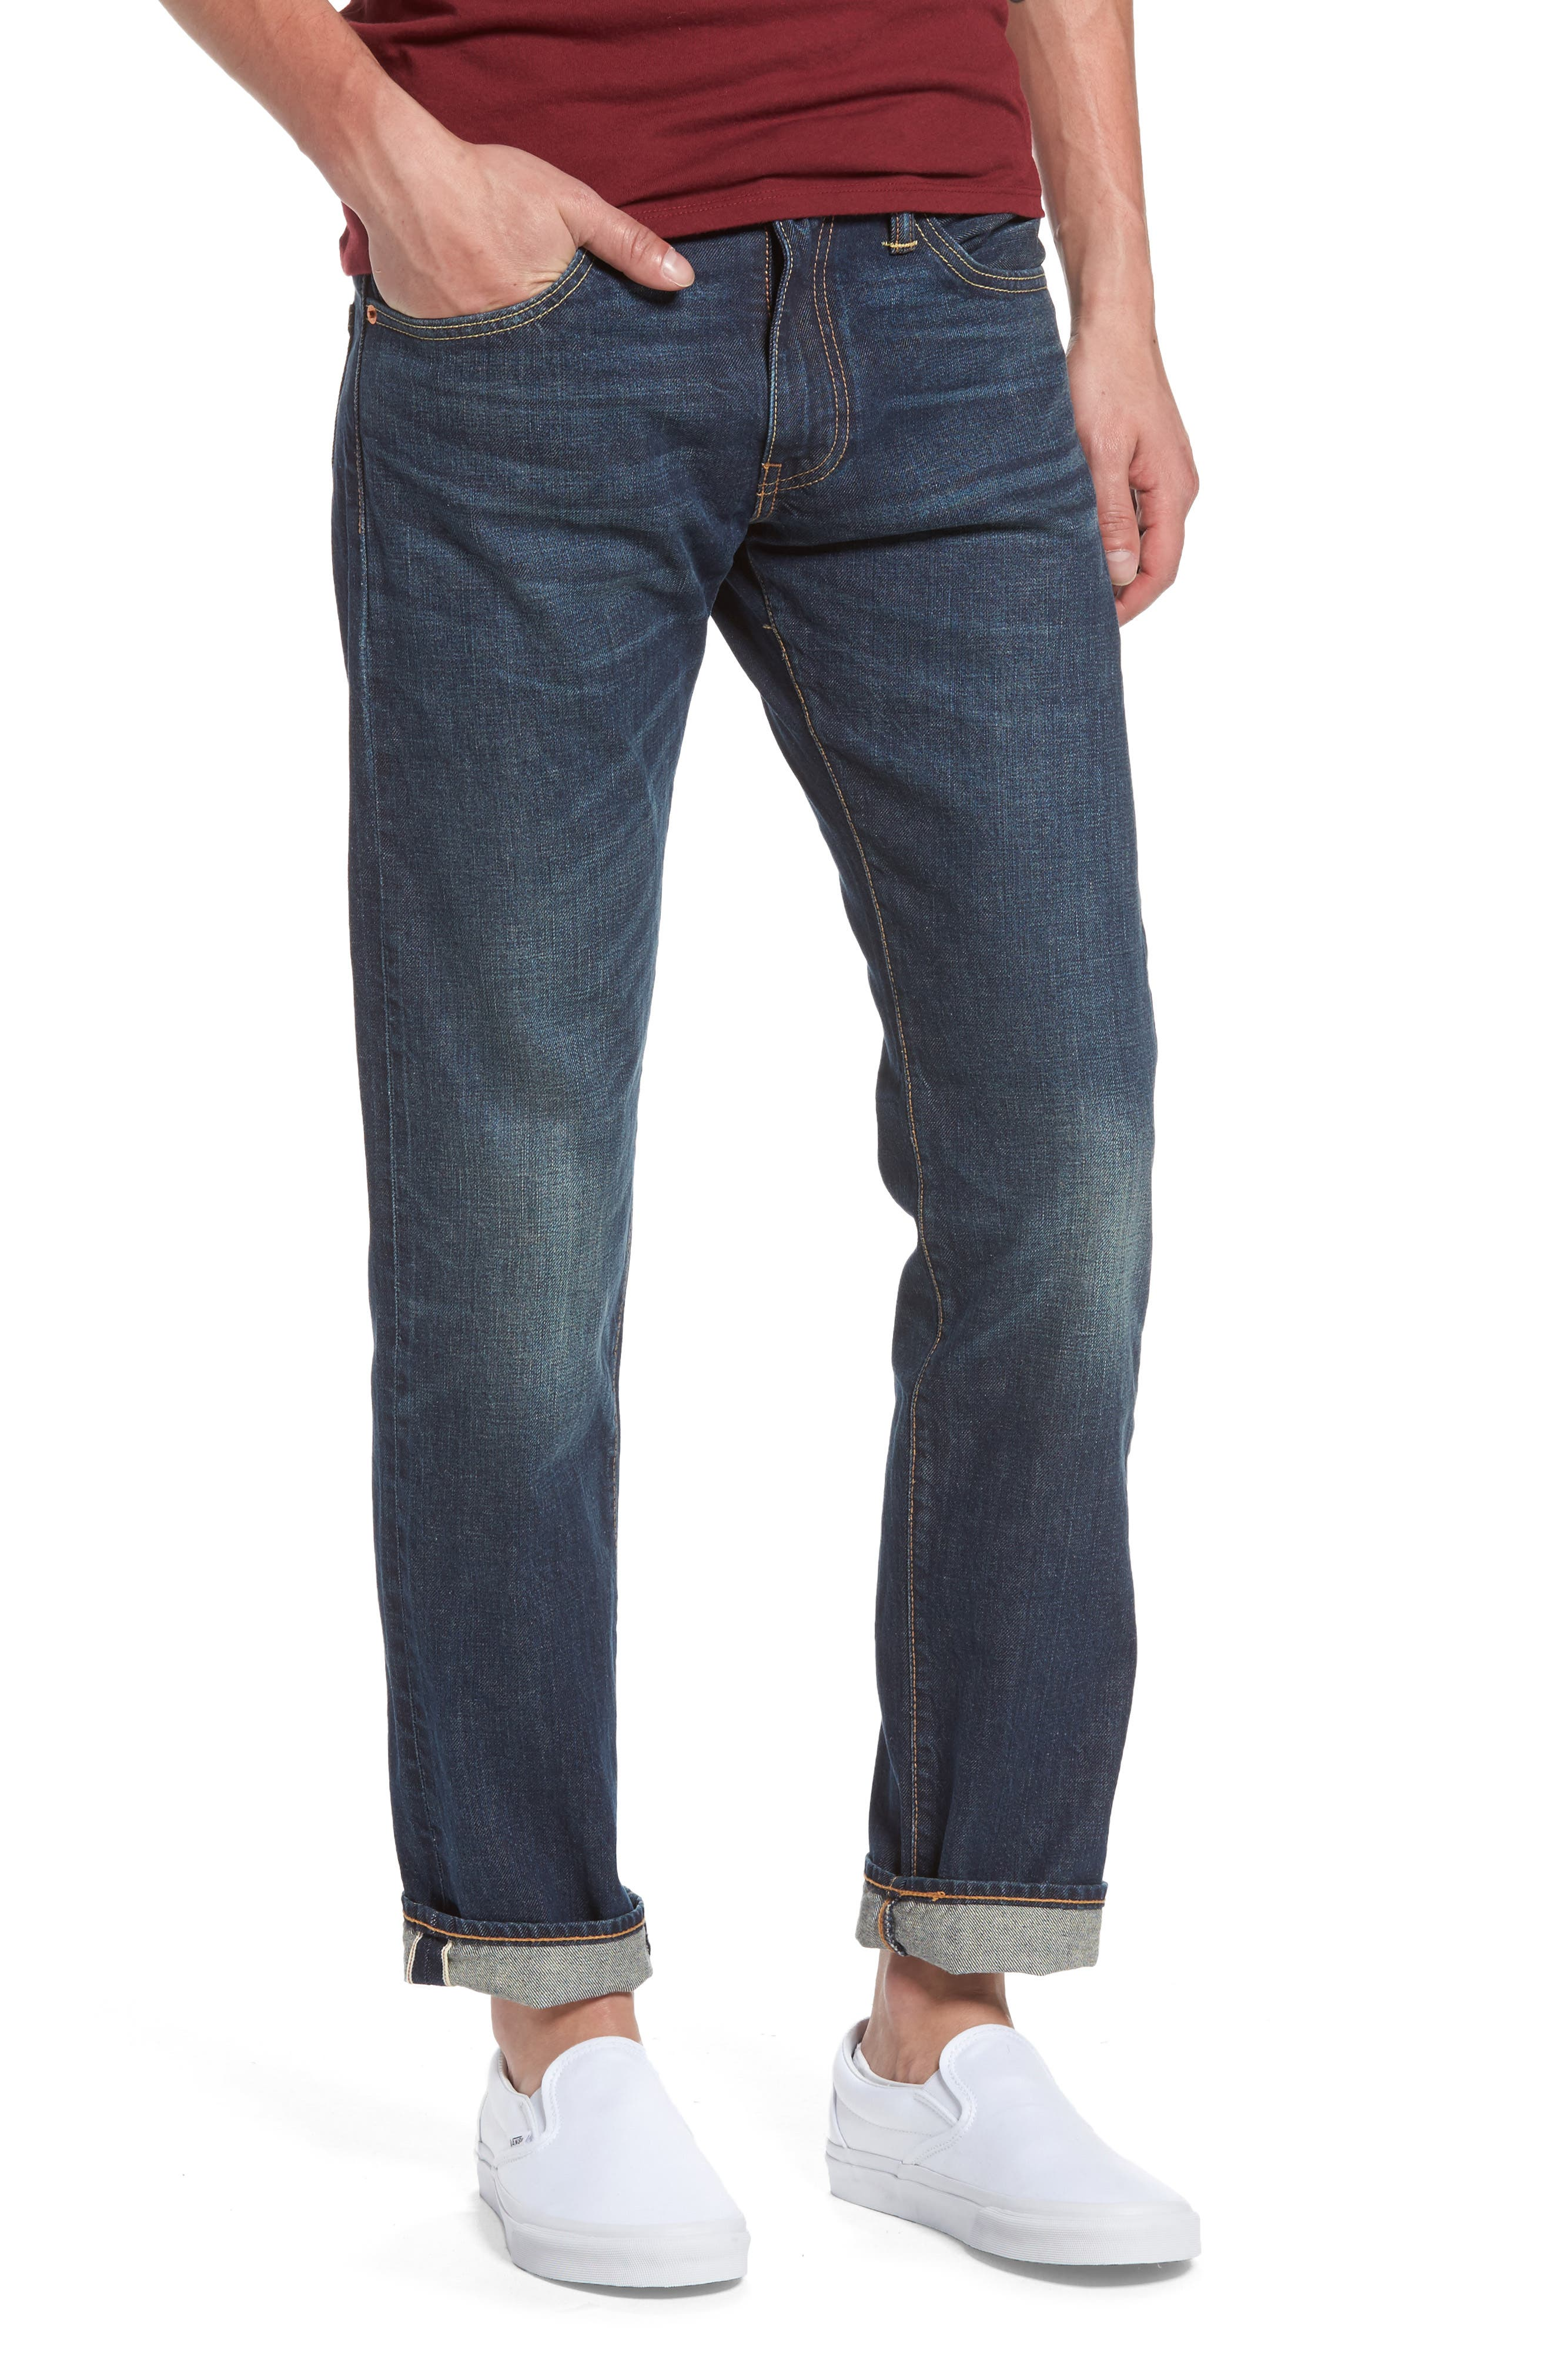 511<sup>™</sup> Slim Fit Jeans,                             Main thumbnail 1, color,                             Stang